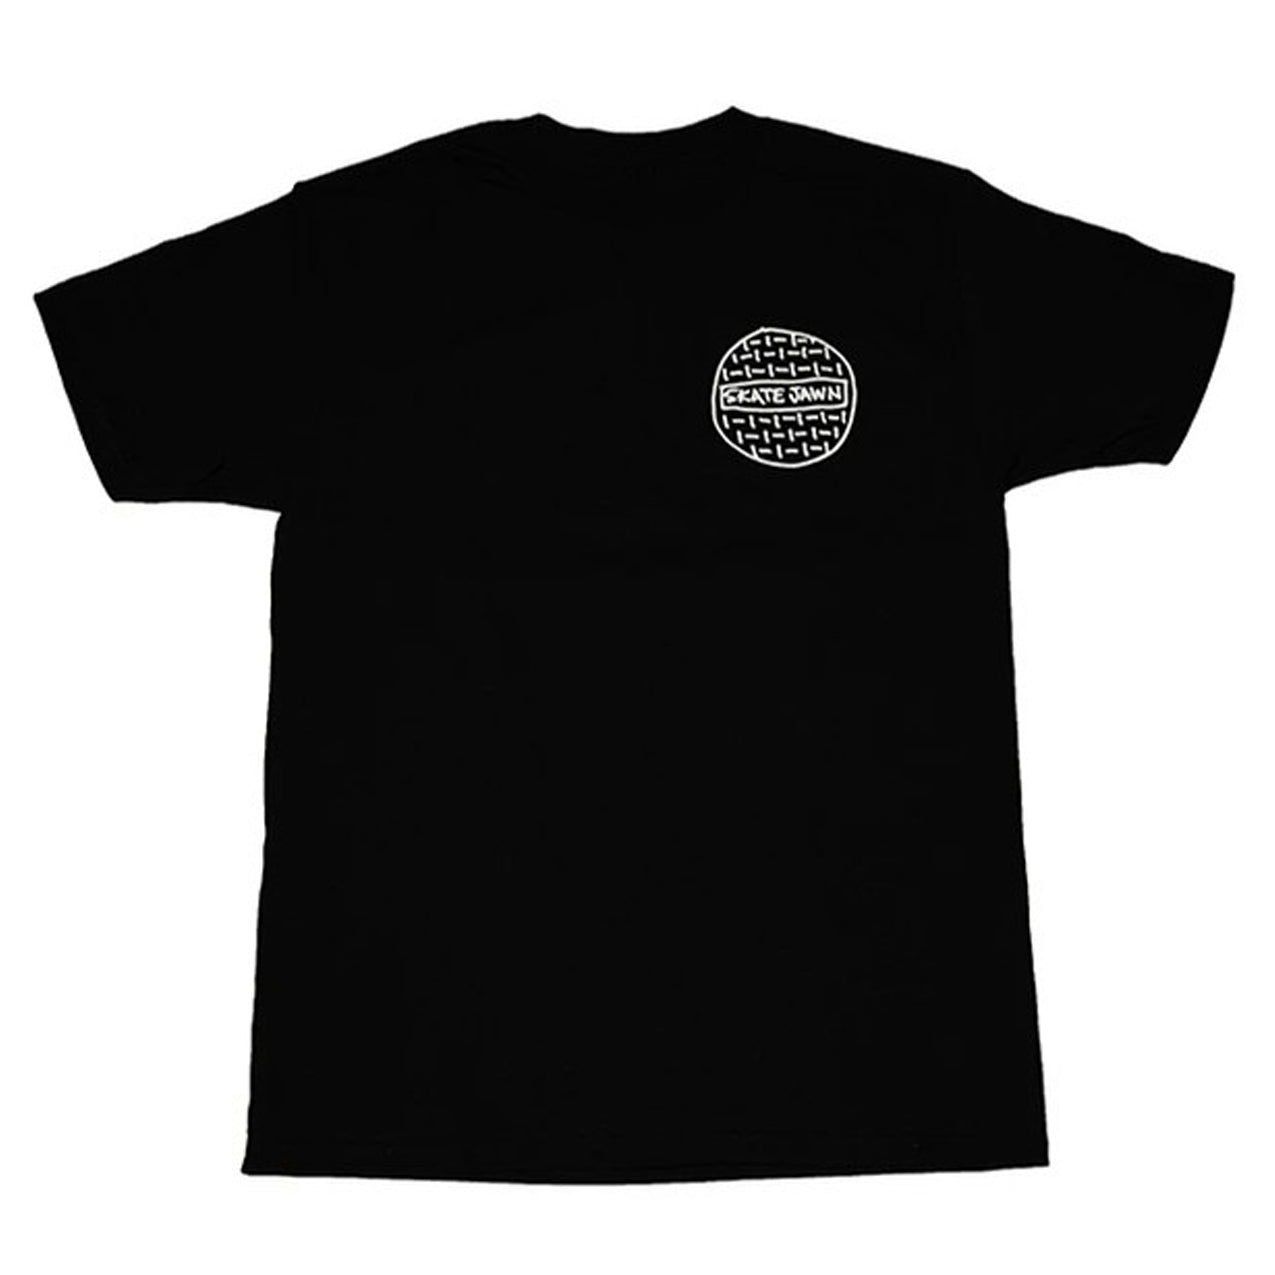 Skate Jawn - Sewer Cap T-Shirt - Black